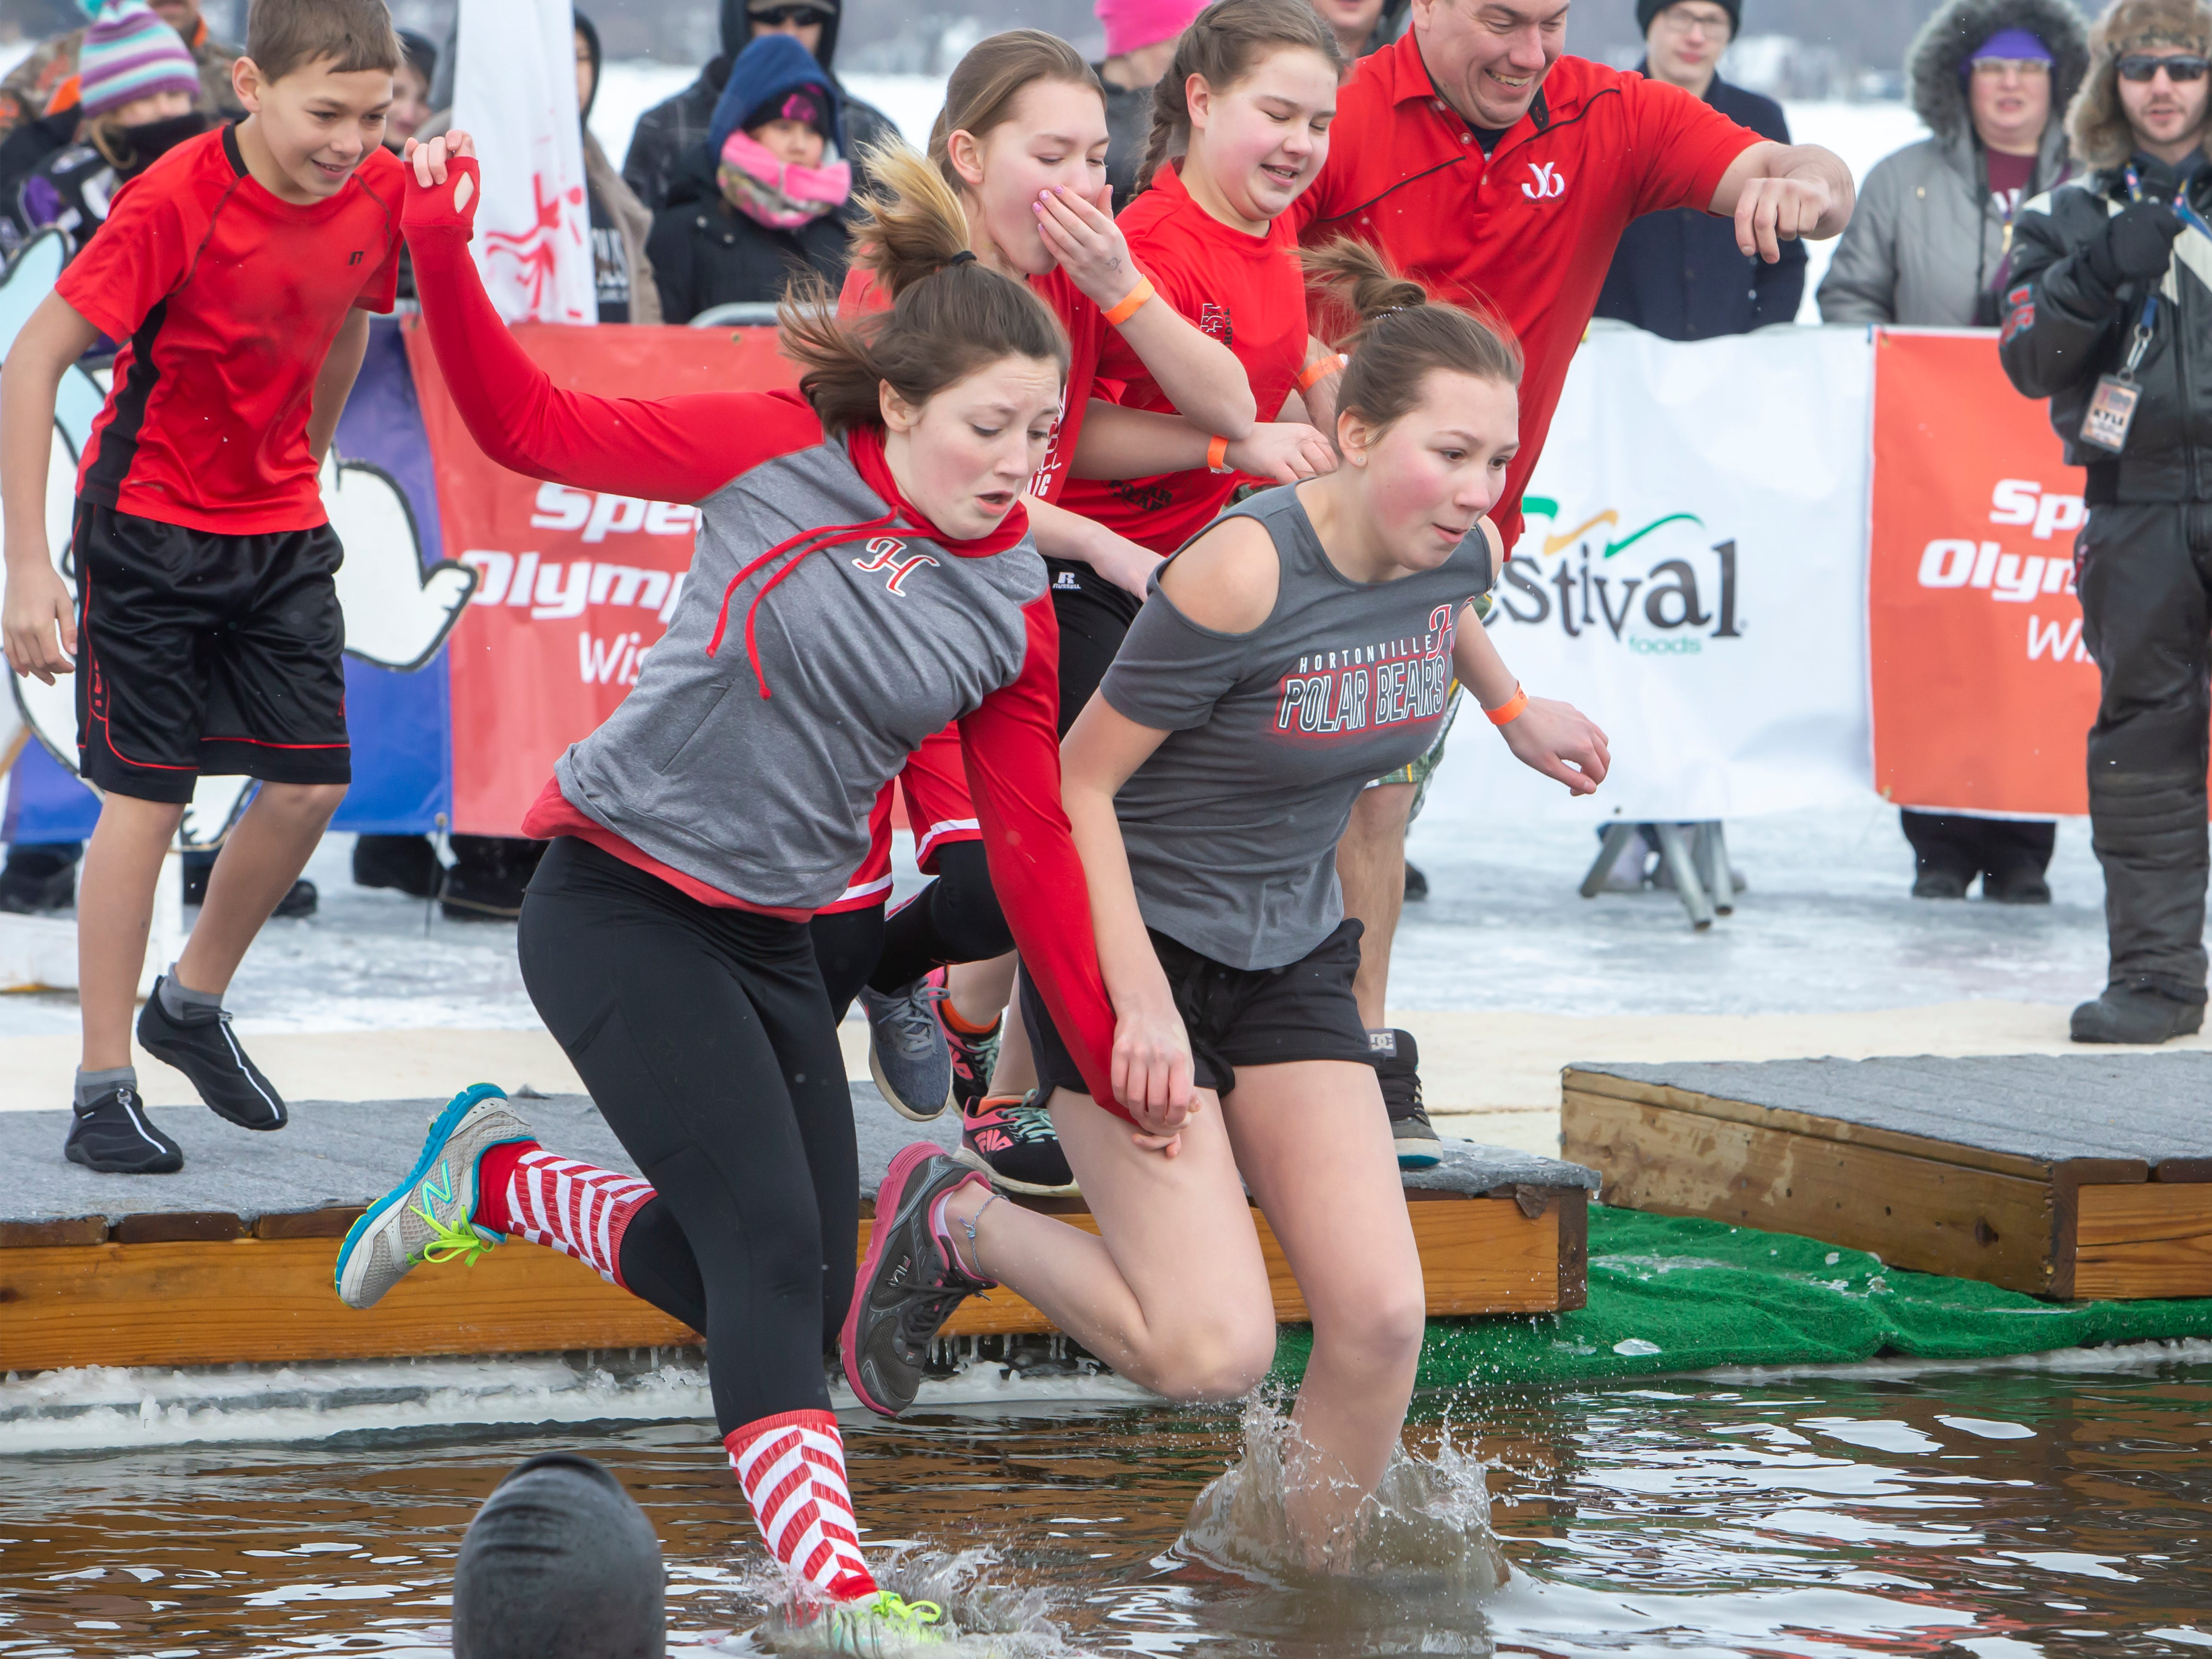 Hortonville High School students take the plunge during the Special Olympics Wisconsin Polar Plunge in Oshkosh, Wis., on Saturday, February 16, 2019, at Miller's Bay in Menominee Park.